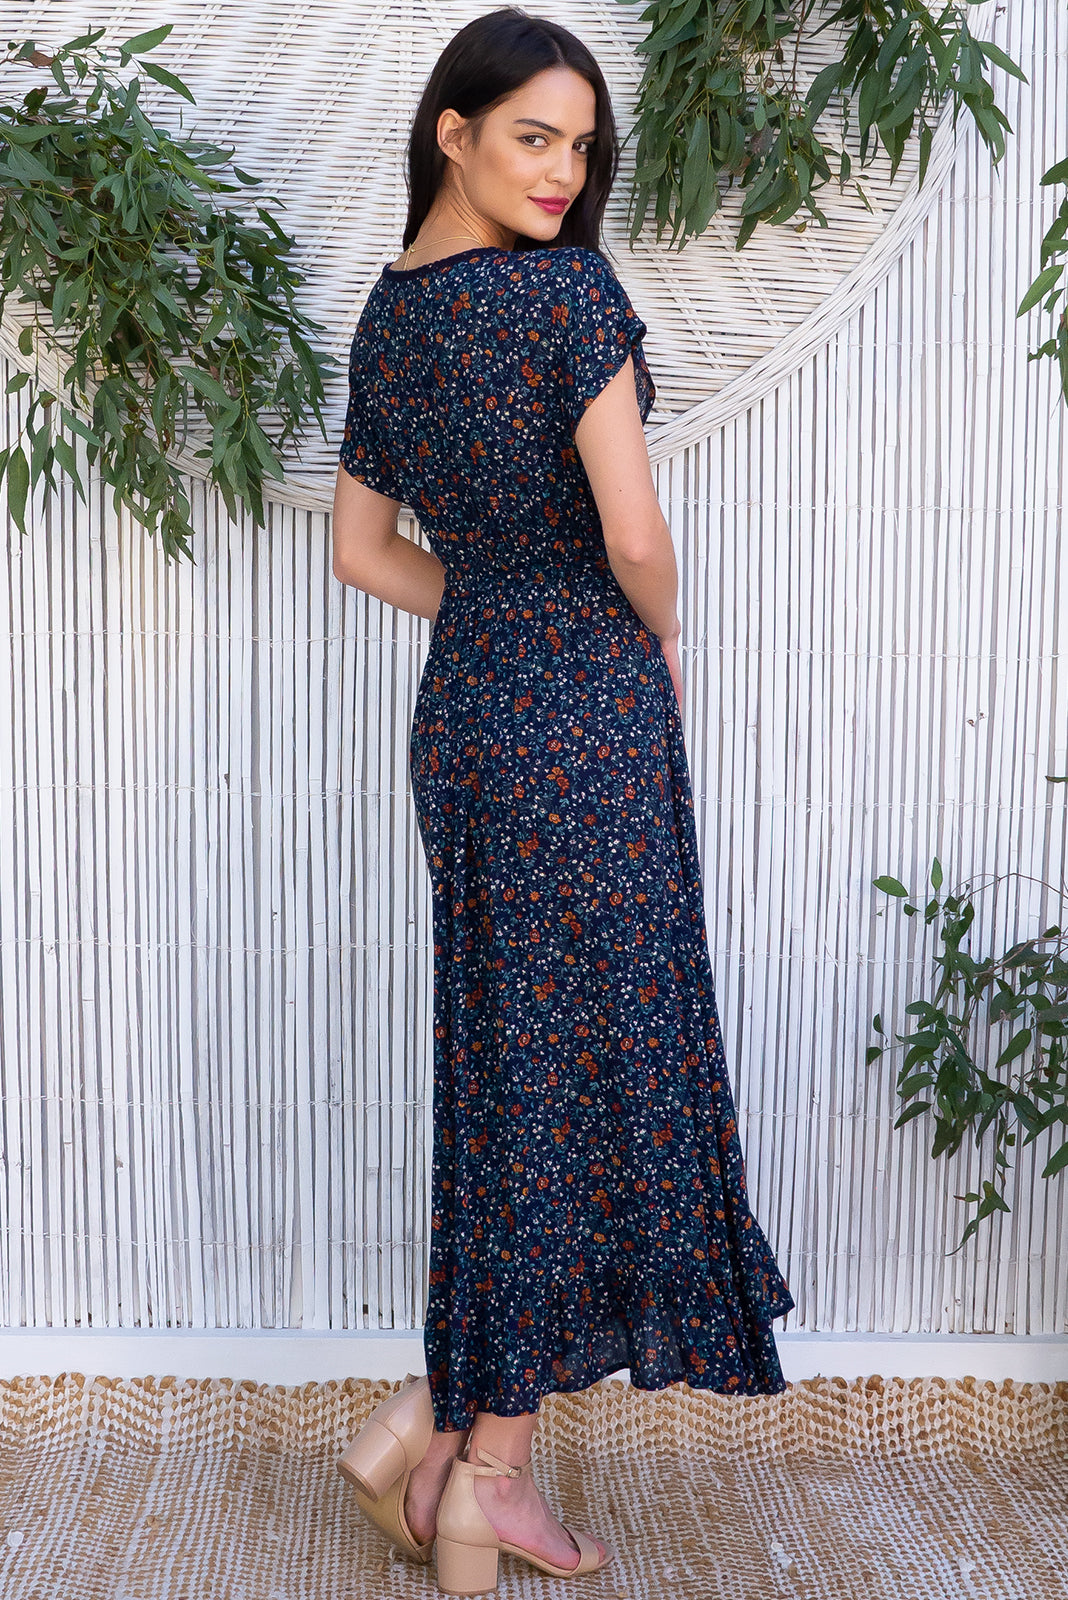 Willow Brae Navy Maxi Dress features V-neck with lace feature, elasticated waist with decorative tie, frill hem and textured woven 100% rayon in ink base with vintage floral print.